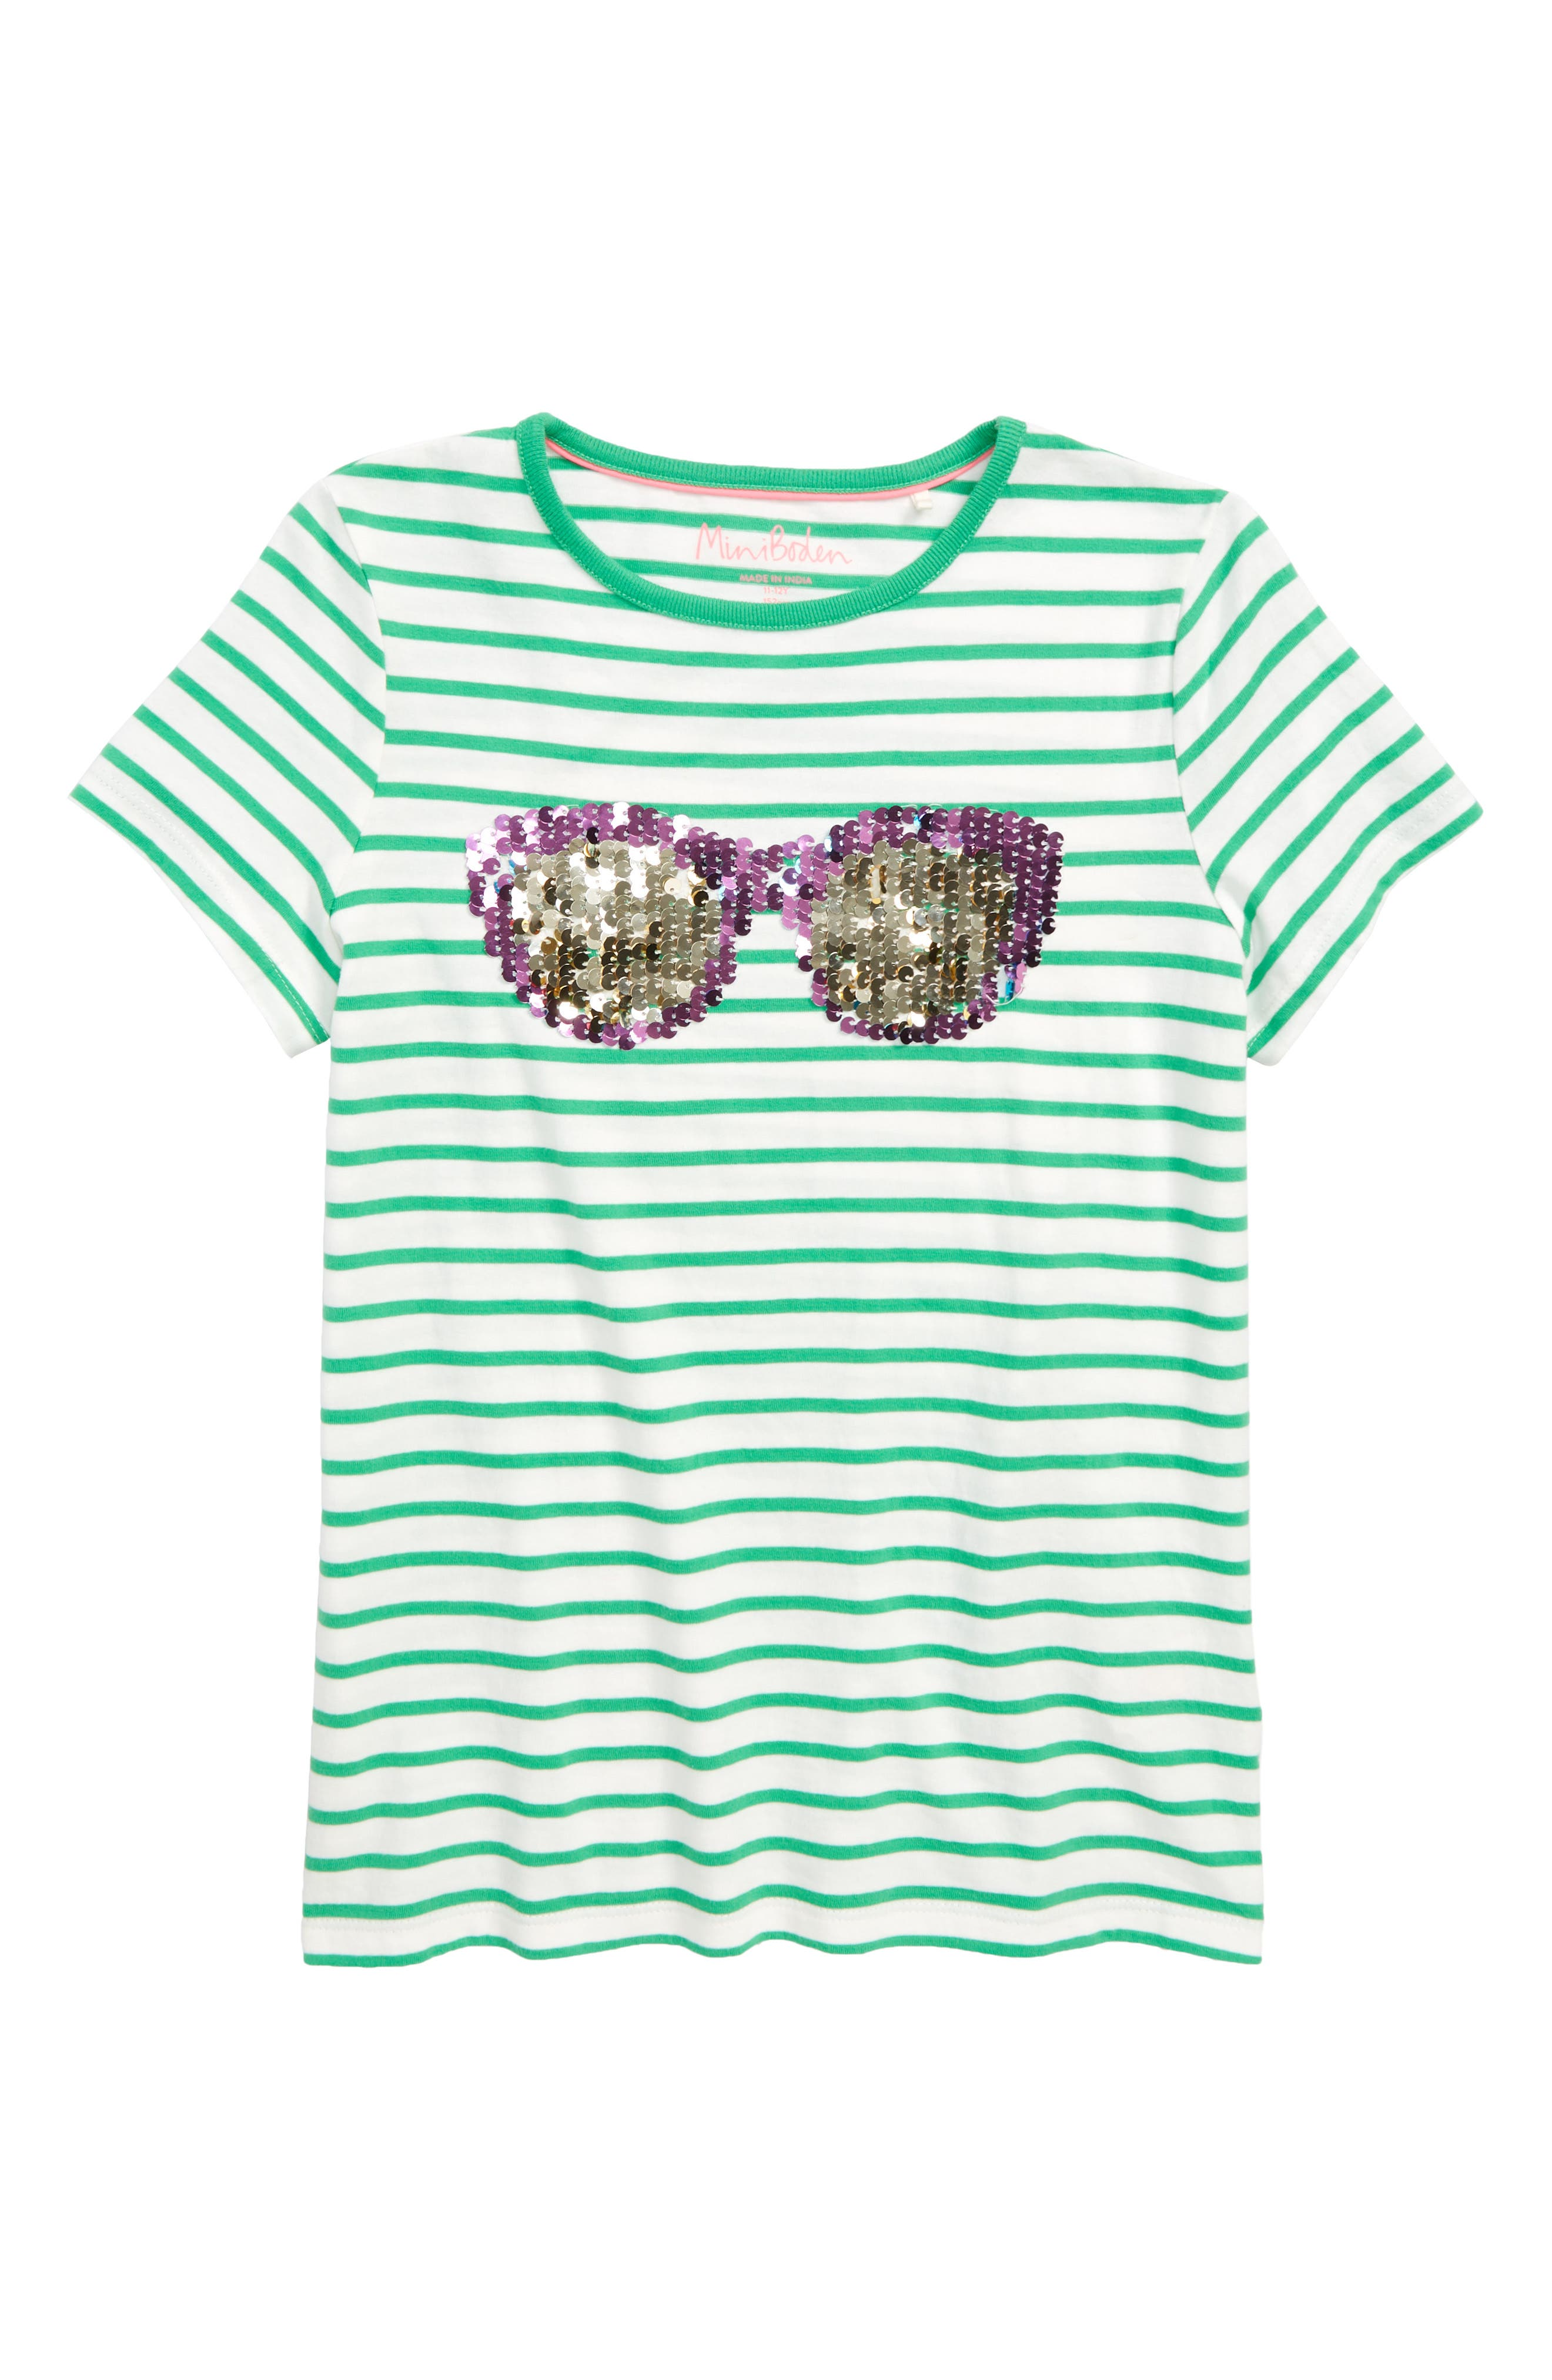 MINI BODEN,                             Sunny Sequin Tee,                             Alternate thumbnail 2, color,                             315